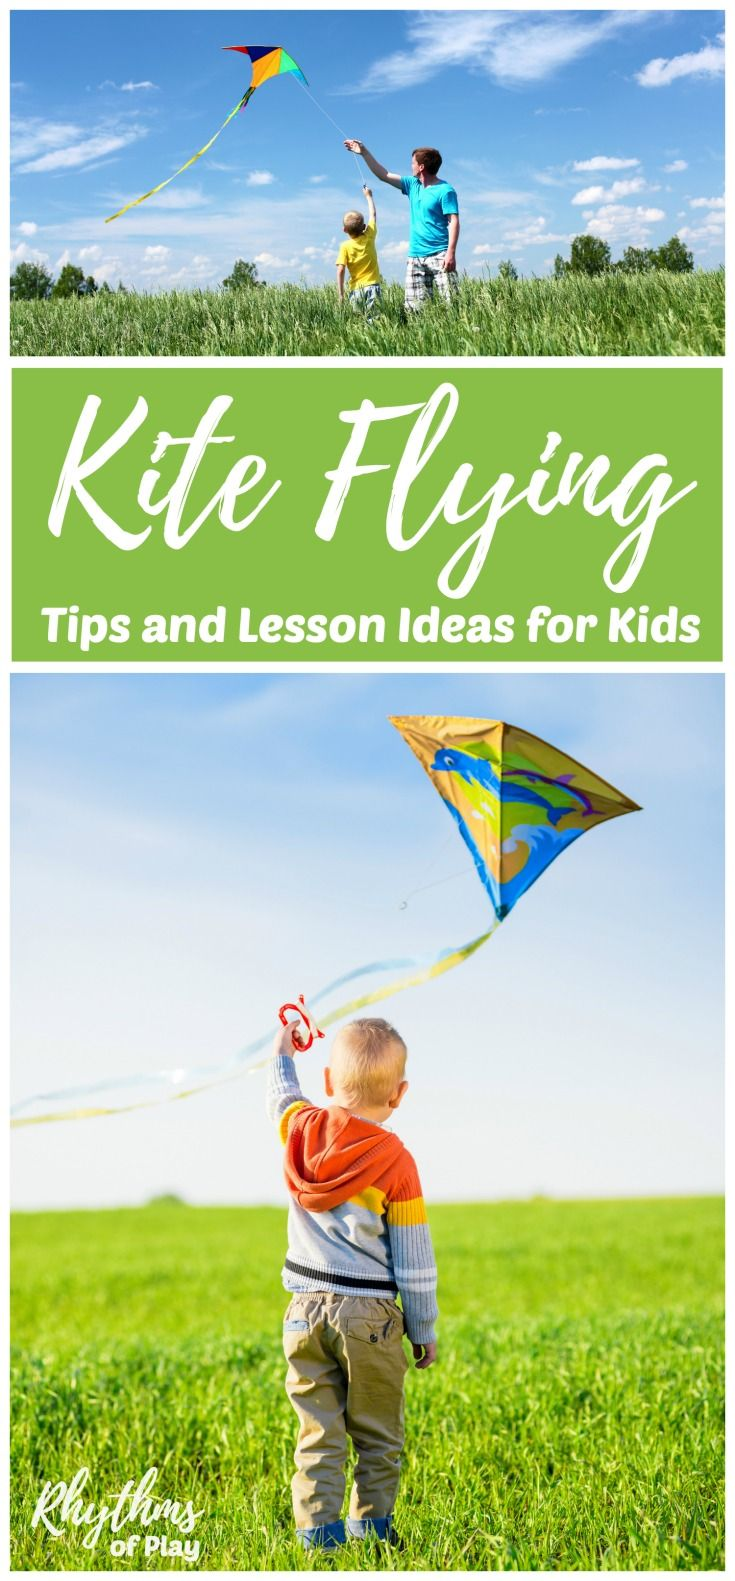 Easy tips to learn how to make and safely fly a kite with kids.Kite flying with kids is a fun outdoor activity with many benefits and opportunities to learn. It's the perfect activity for homeschoolers and families to get outside, connect, and learn about wind science through play. Choosing to make your own kite turns kite flying with kids into a STEAM activity. Kids can learn a lot from designing, building, and decorating their own kites.